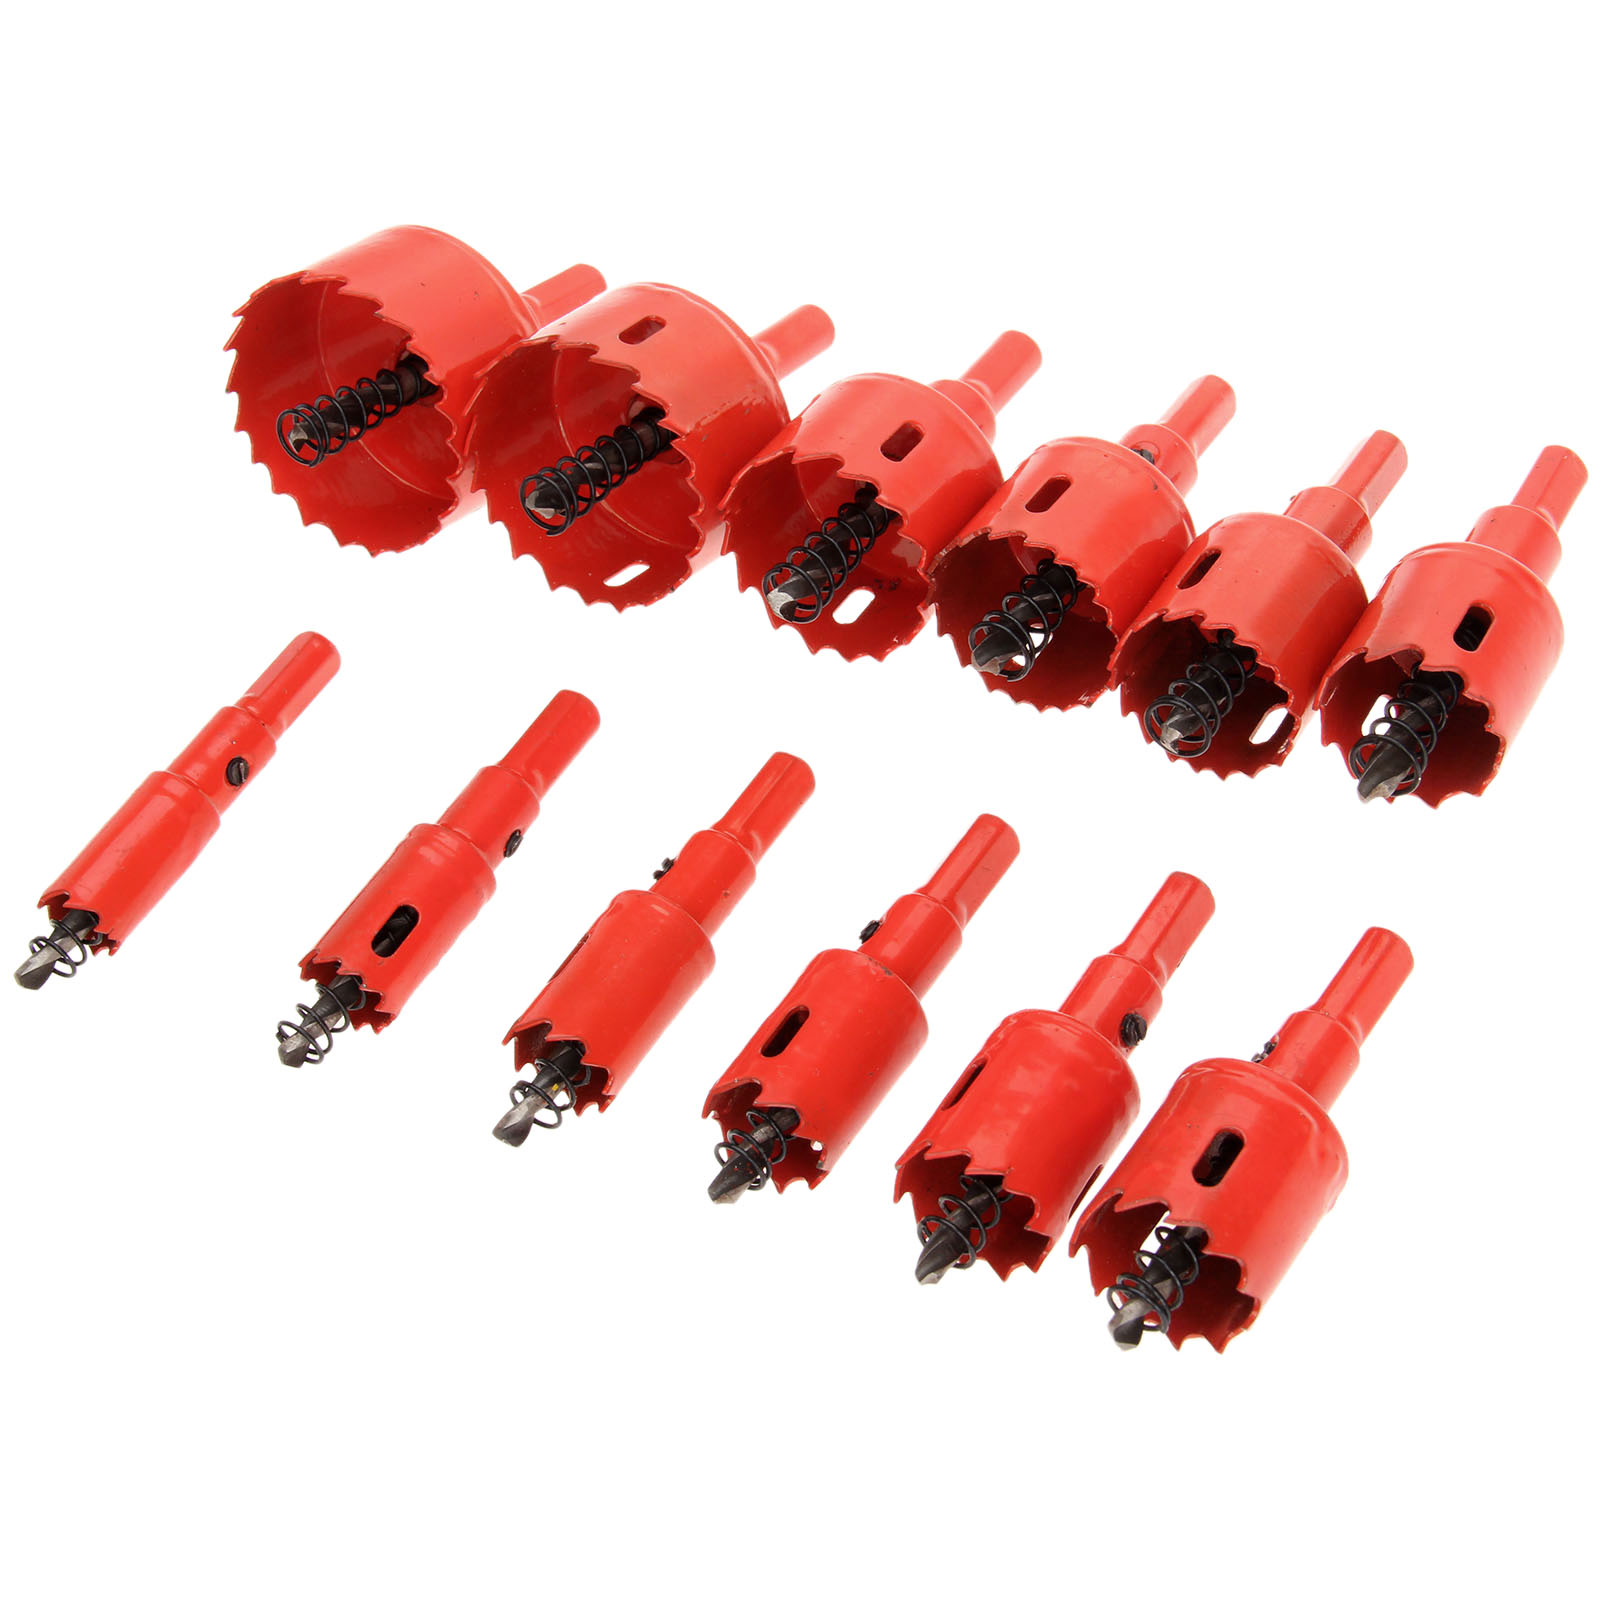 1Pc 16mm-53mm Drill Bit Hole Saw Twist Drill Bits Cutter Power Tool Metal Holes Drilling Kit Carpentry Tools for Wood Steel Iron e14 led bulb corn lamp e27 220v led corn light bulb 110v led bombillas ac85 265v 5736 smd 3 5w 5w 7w 9w 12w 15w 20w lampada 240v